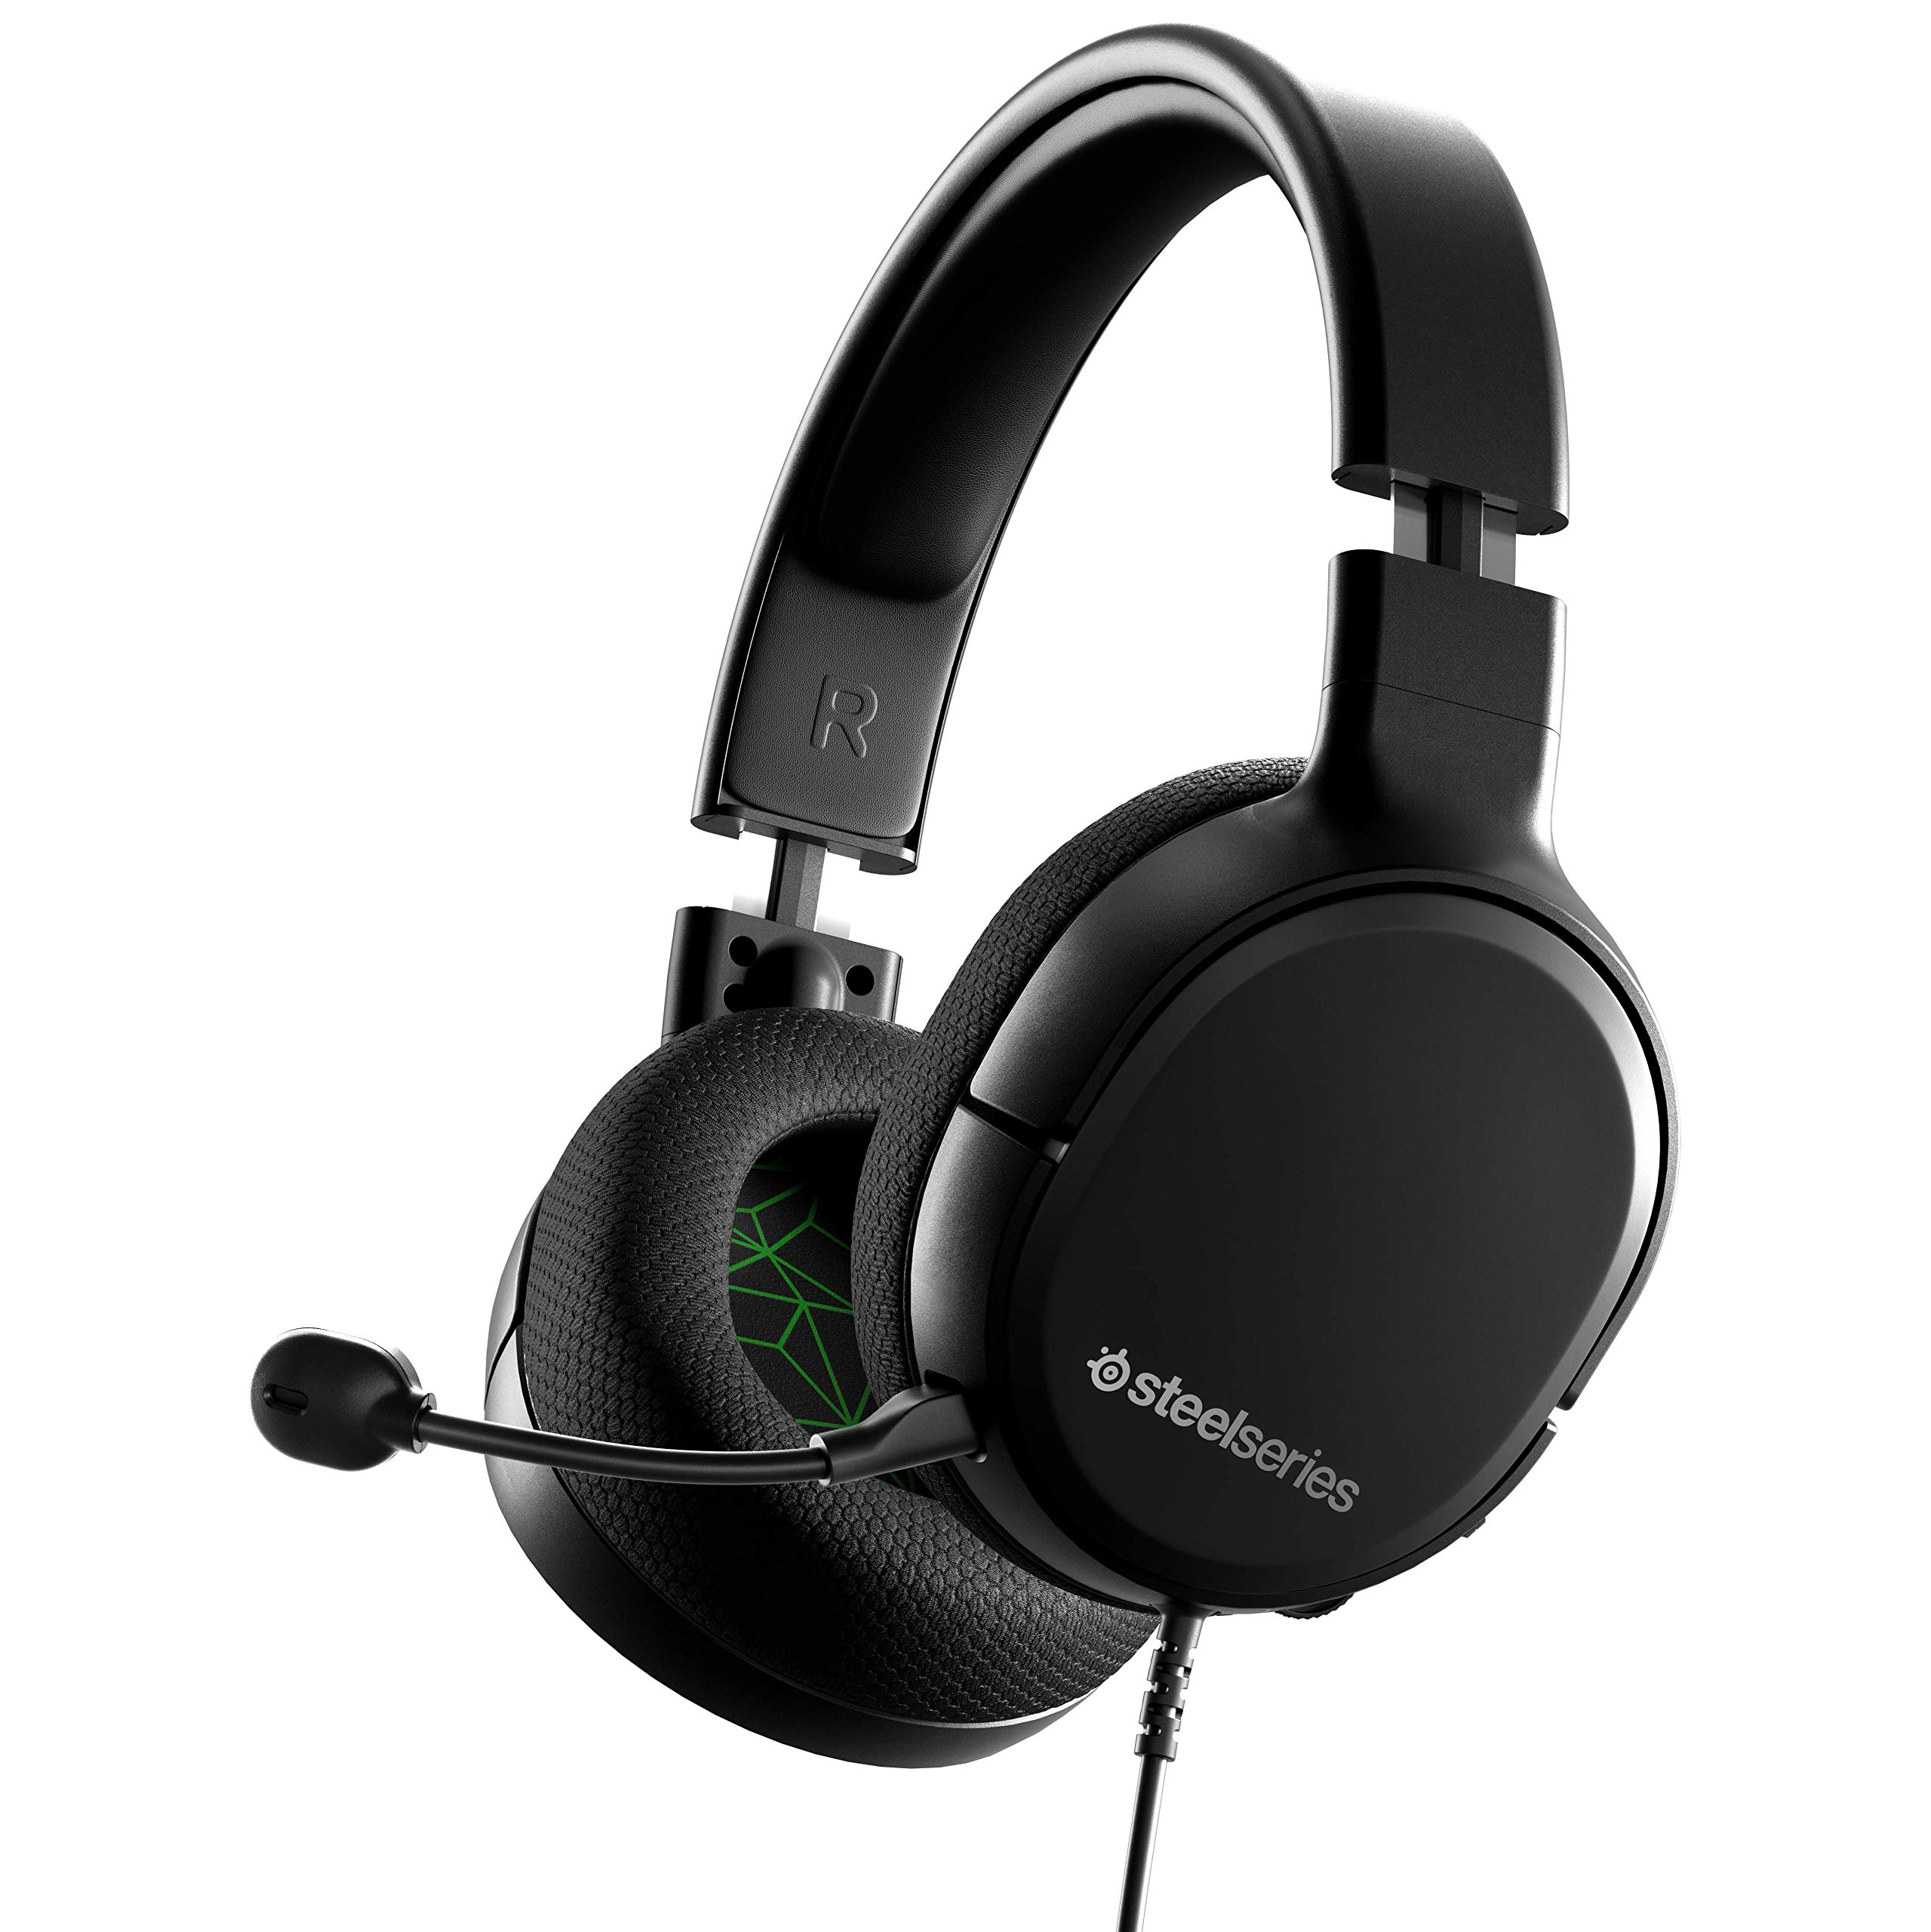 SteelSeries Arctis 1 Wired Gaming Headset - detachable Clearcast Microphone - Lightweight Steel-Reinforced Headband - for Xbox, PC, PS4, Nintendo Switch, Mobile - Xbox